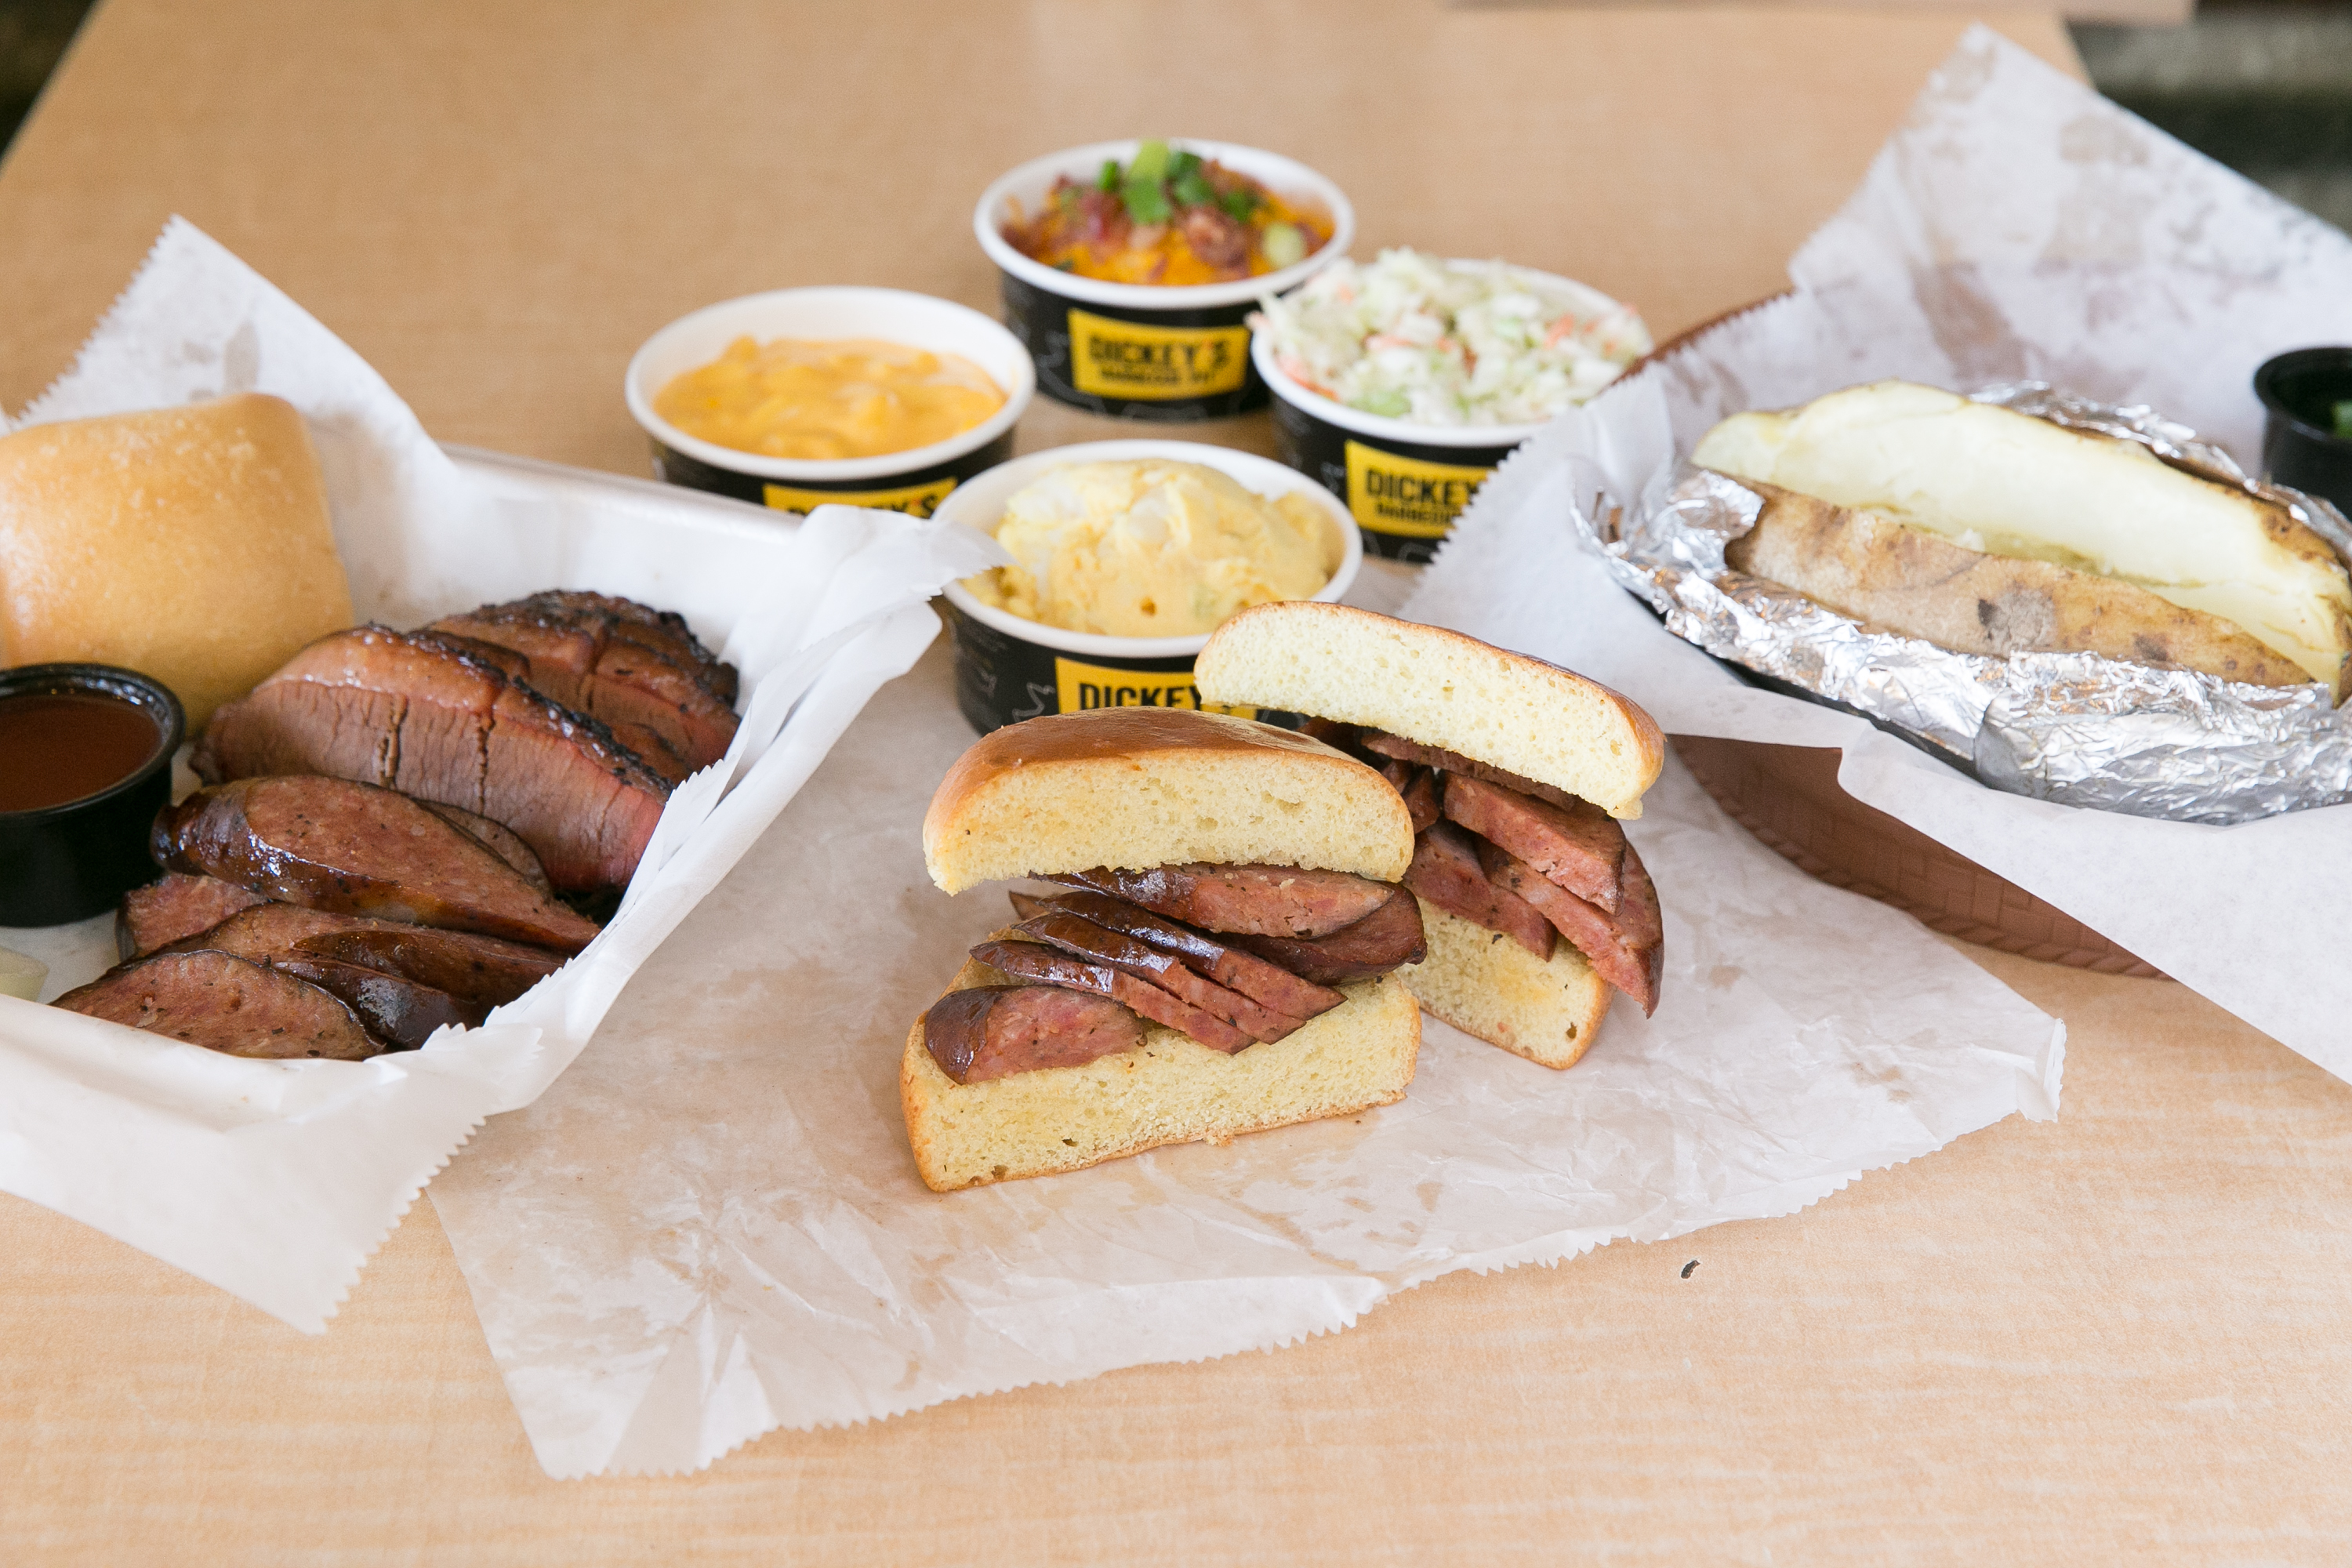 Best BBQ Catering in Denver: Dickey's Barbecue